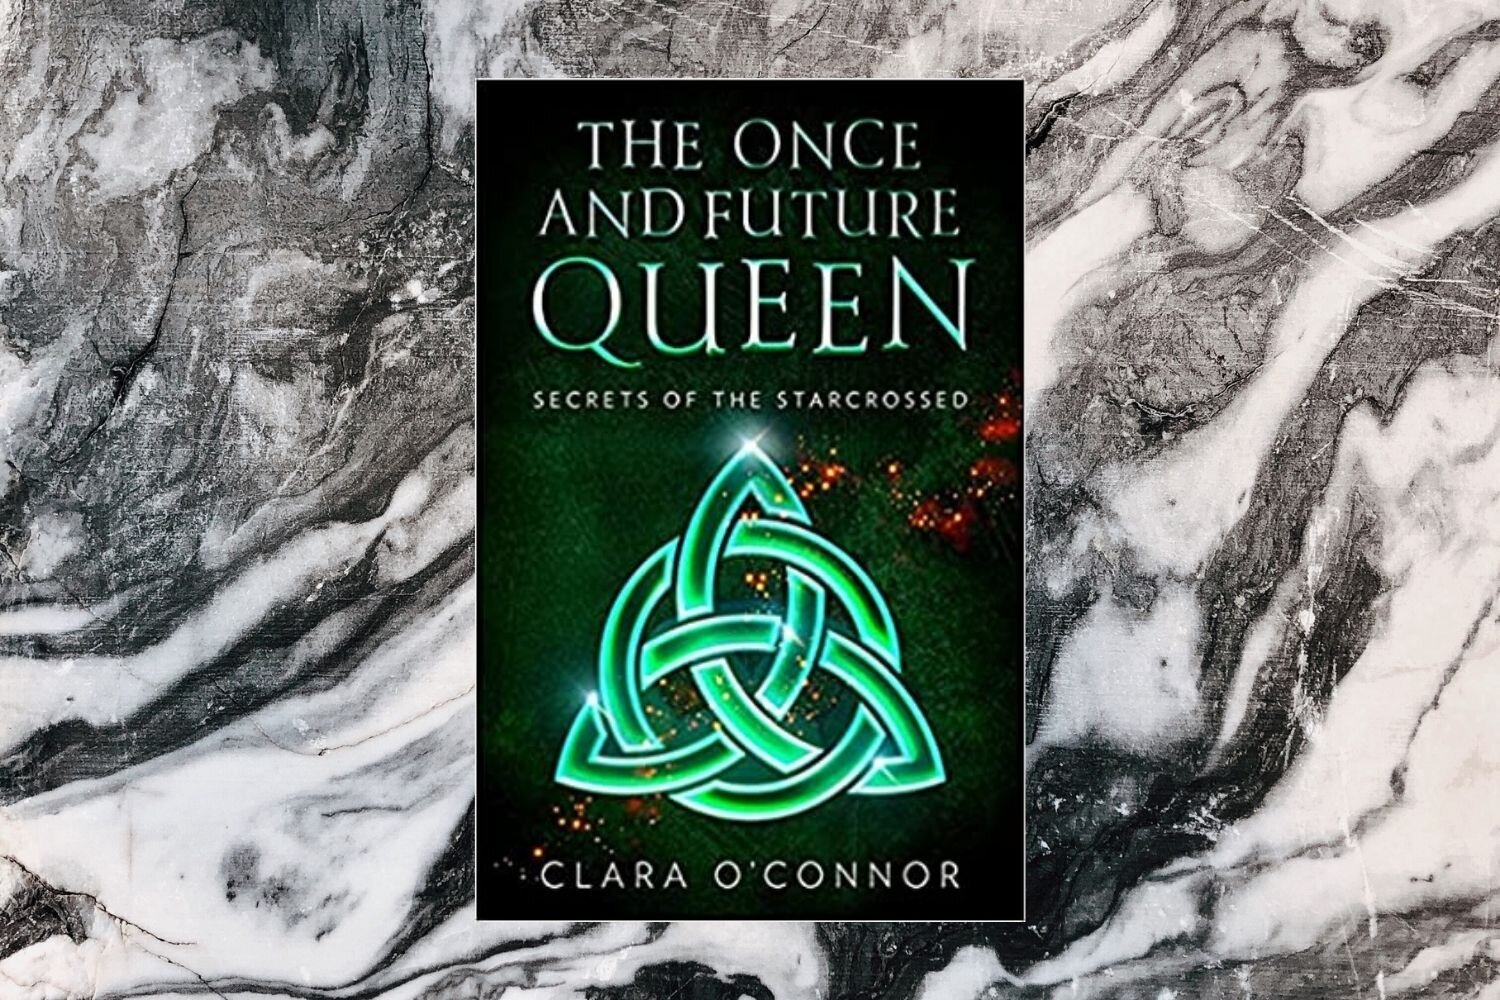 Secrets of the Starcrossed by Clara O'Connor